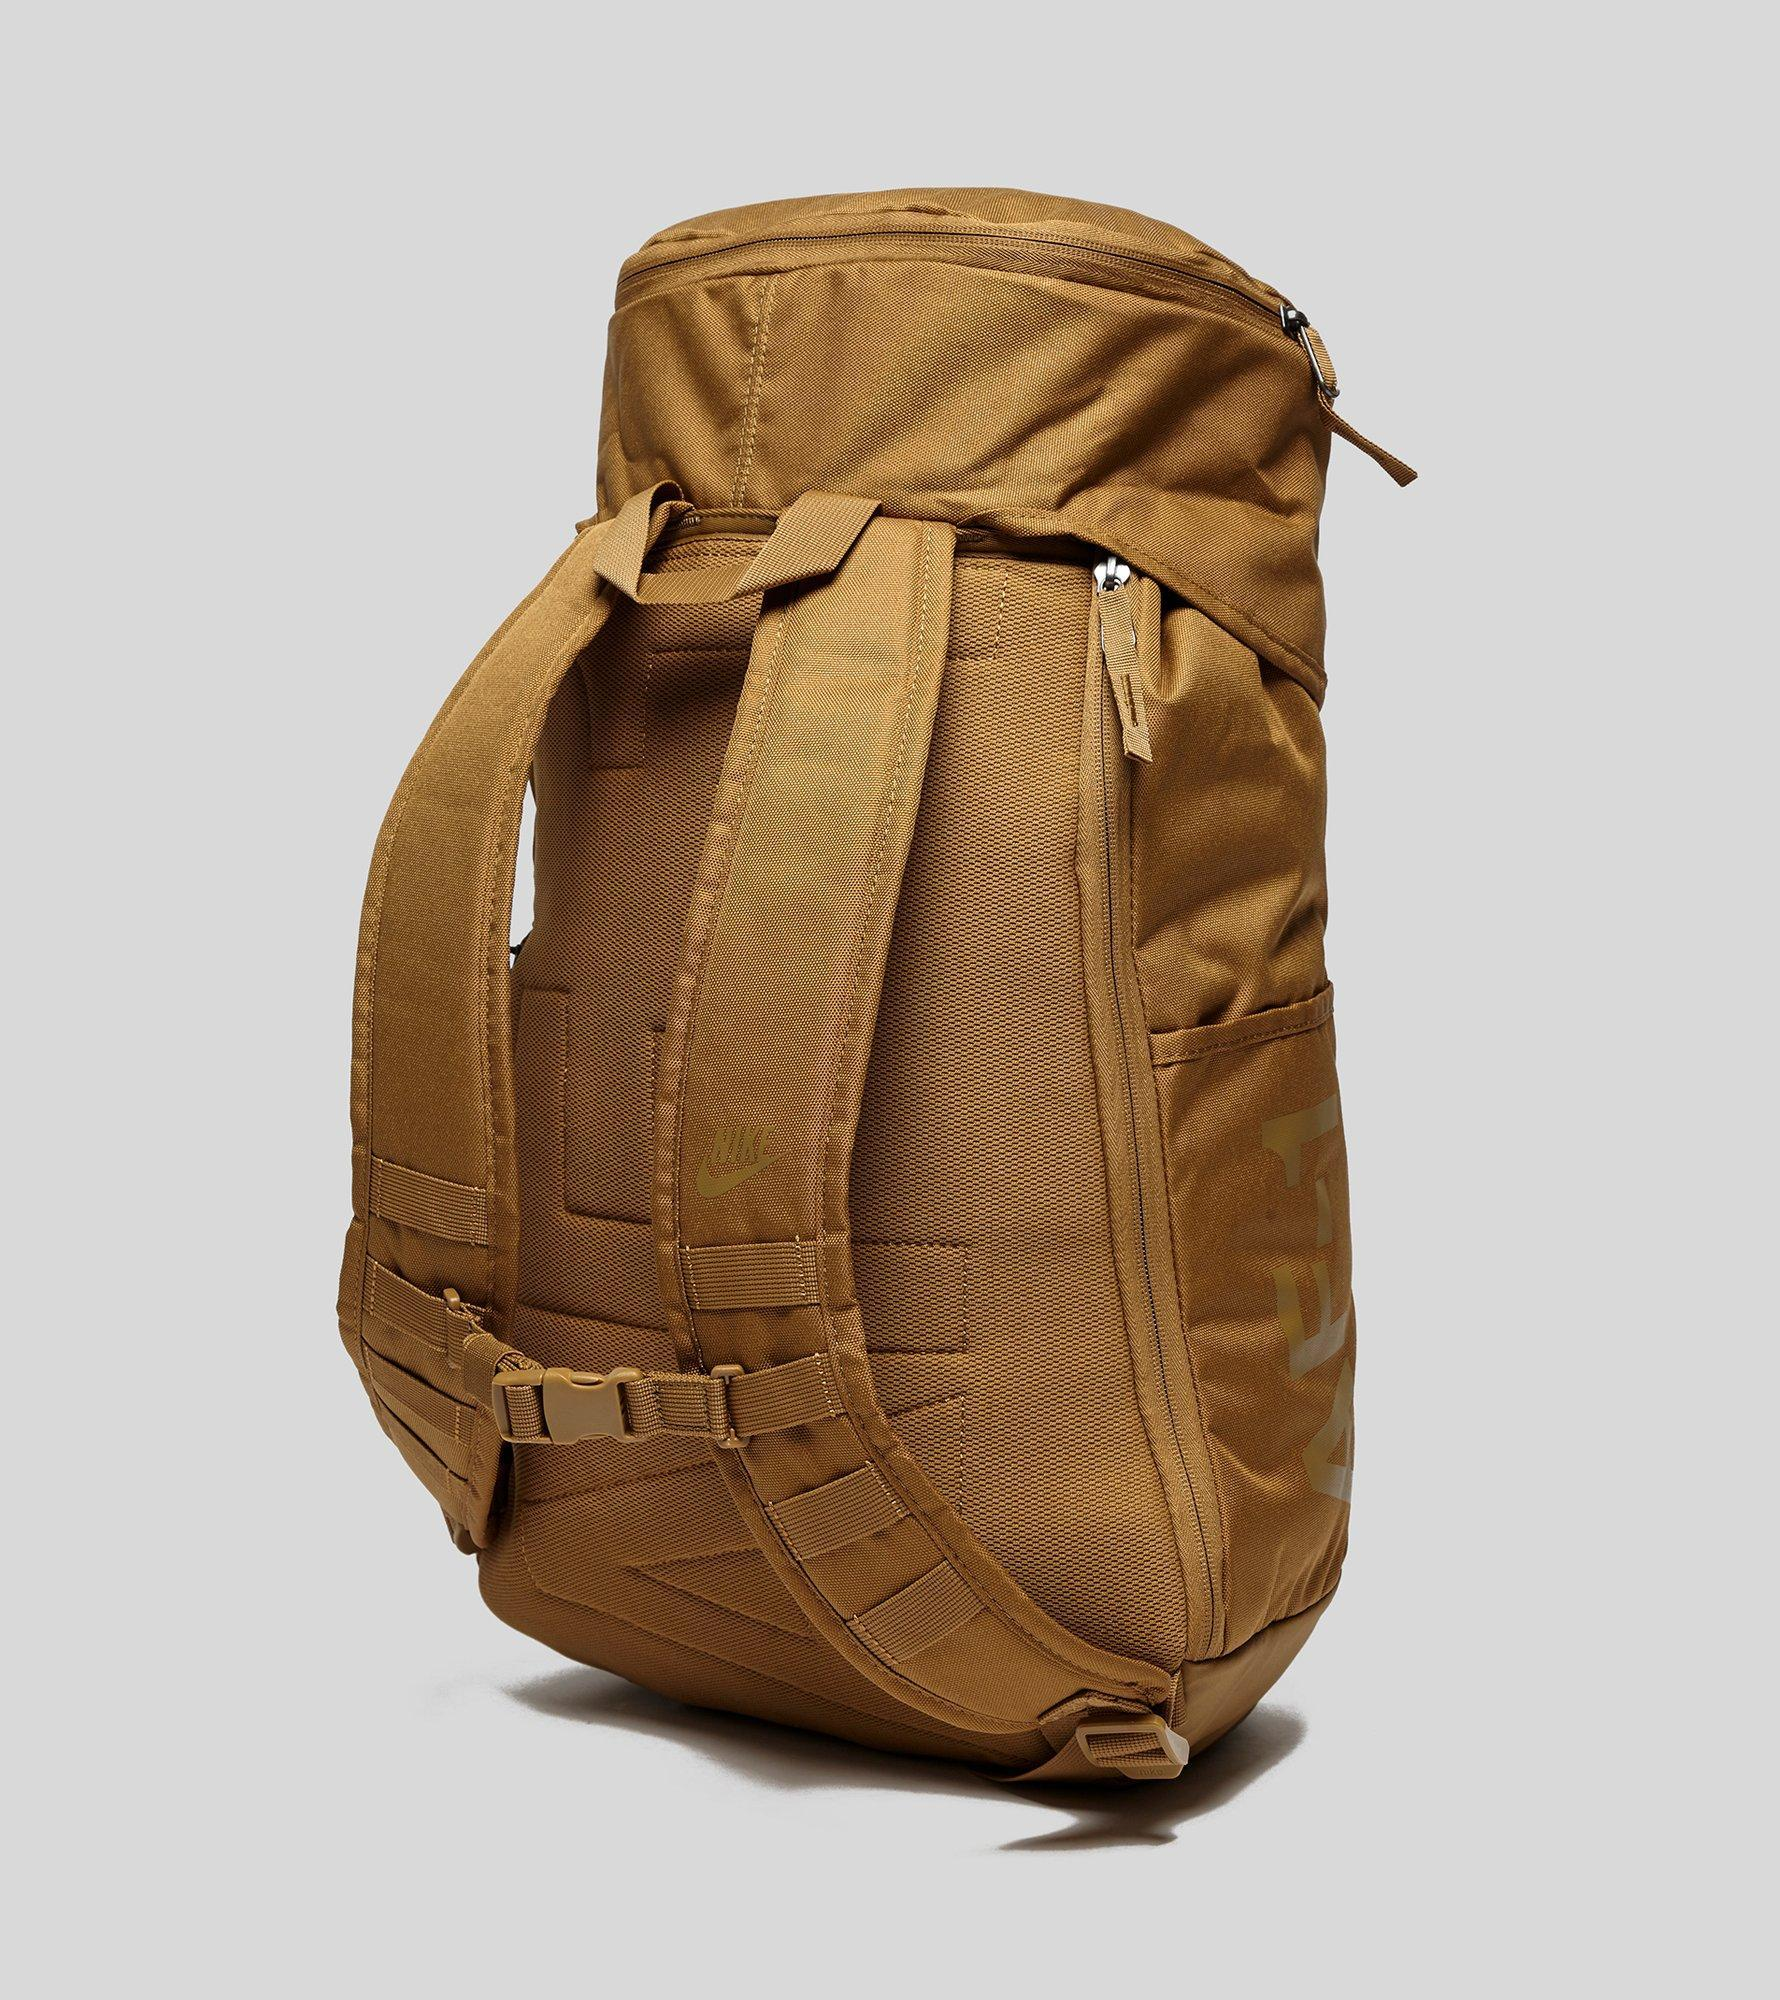 f9ad6973e2d0 Lyst - Nike Air Force 1 Backpack in Brown for Men